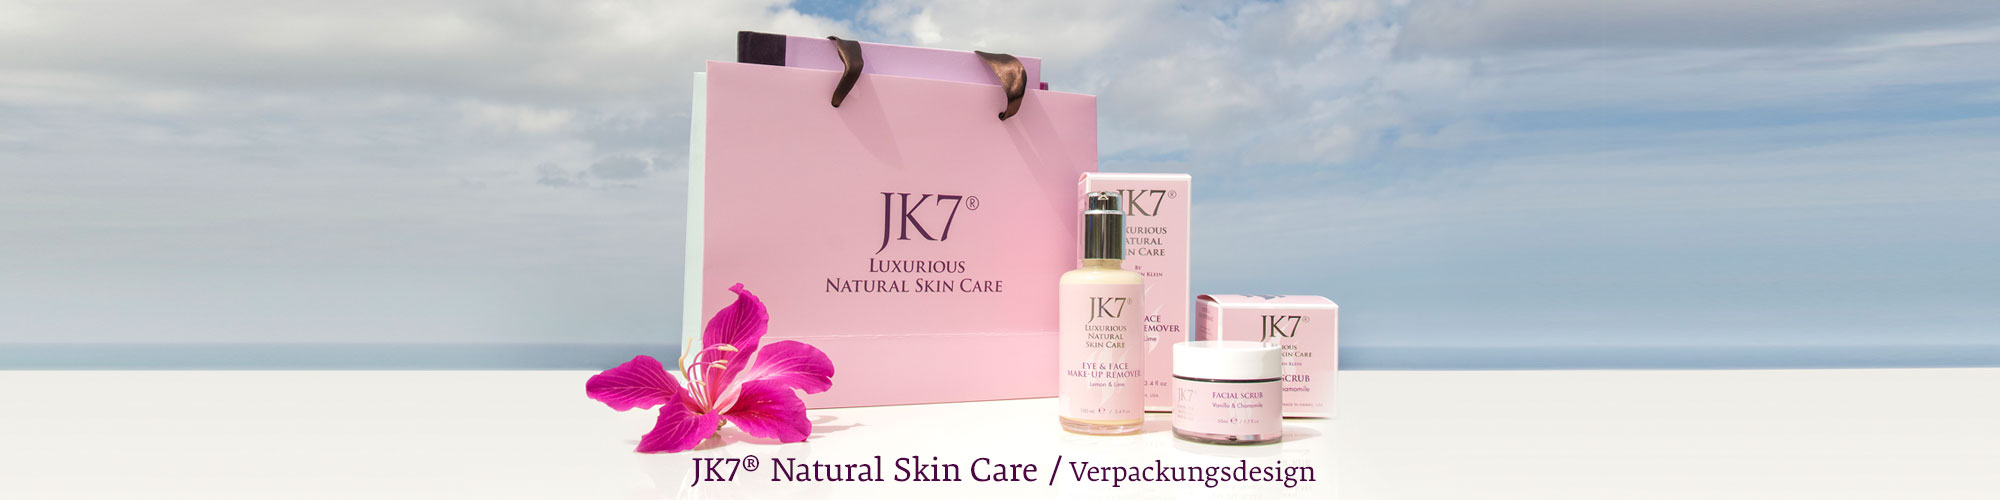 JK7® Natural Skin Care